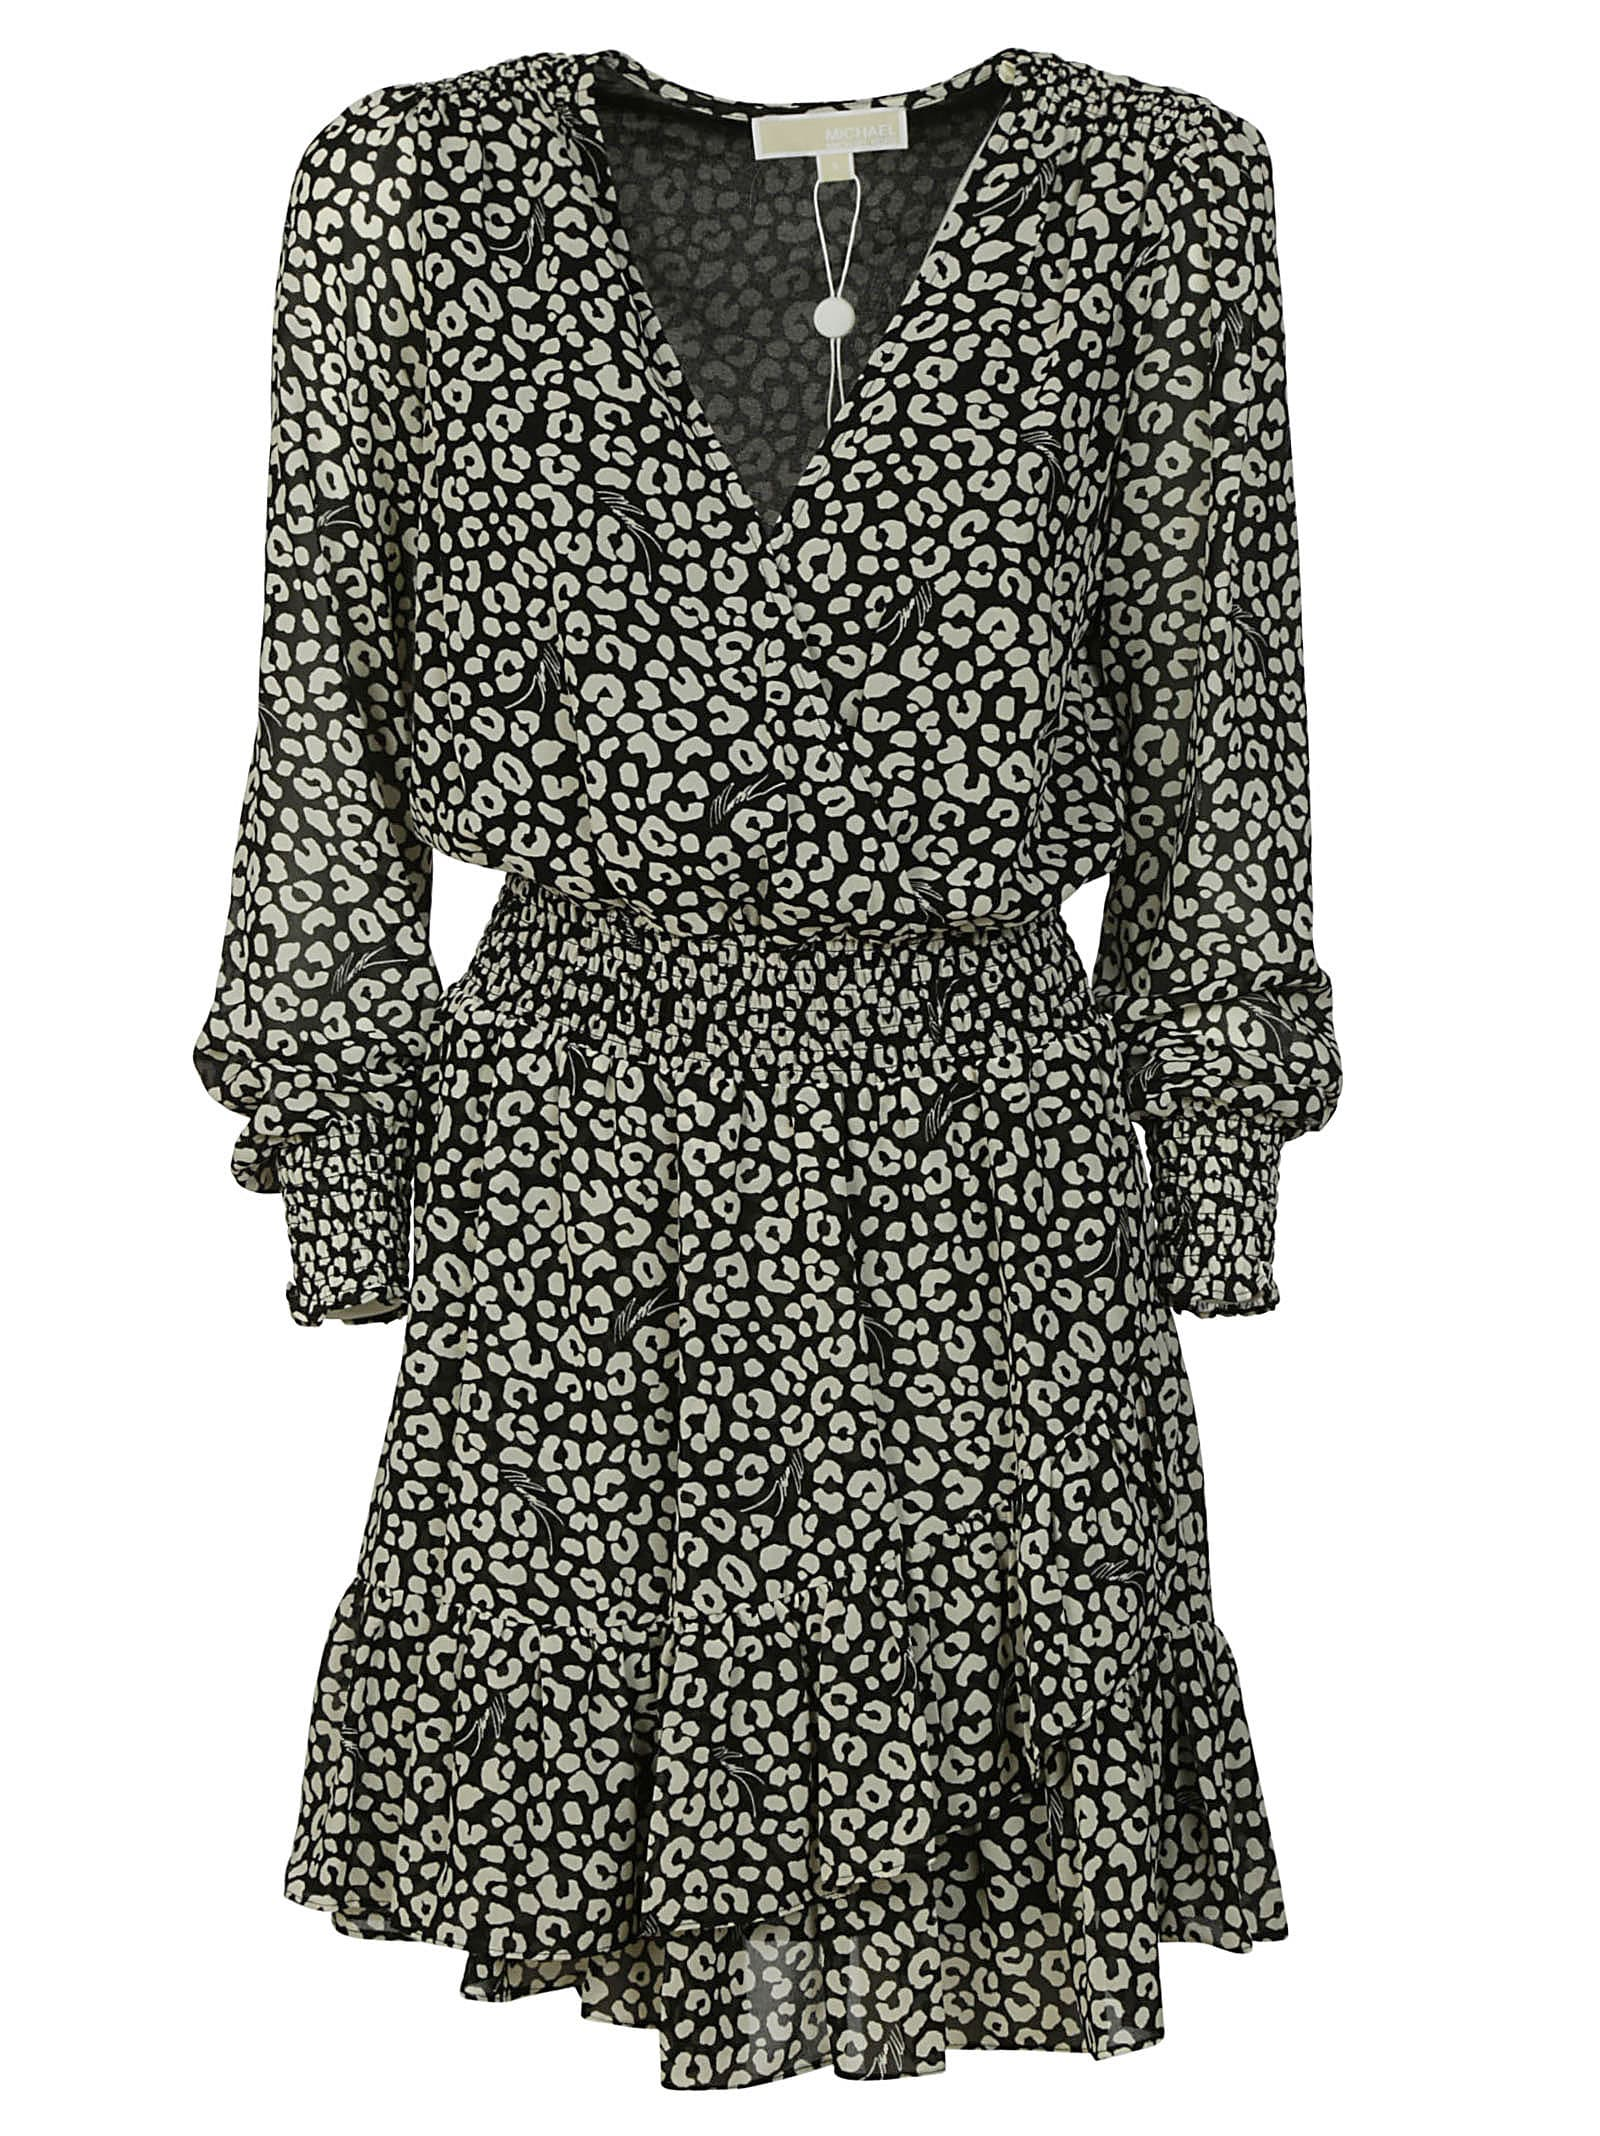 Buy Michael Kors All-over Printed Ruffled Dress online, shop Michael Kors with free shipping